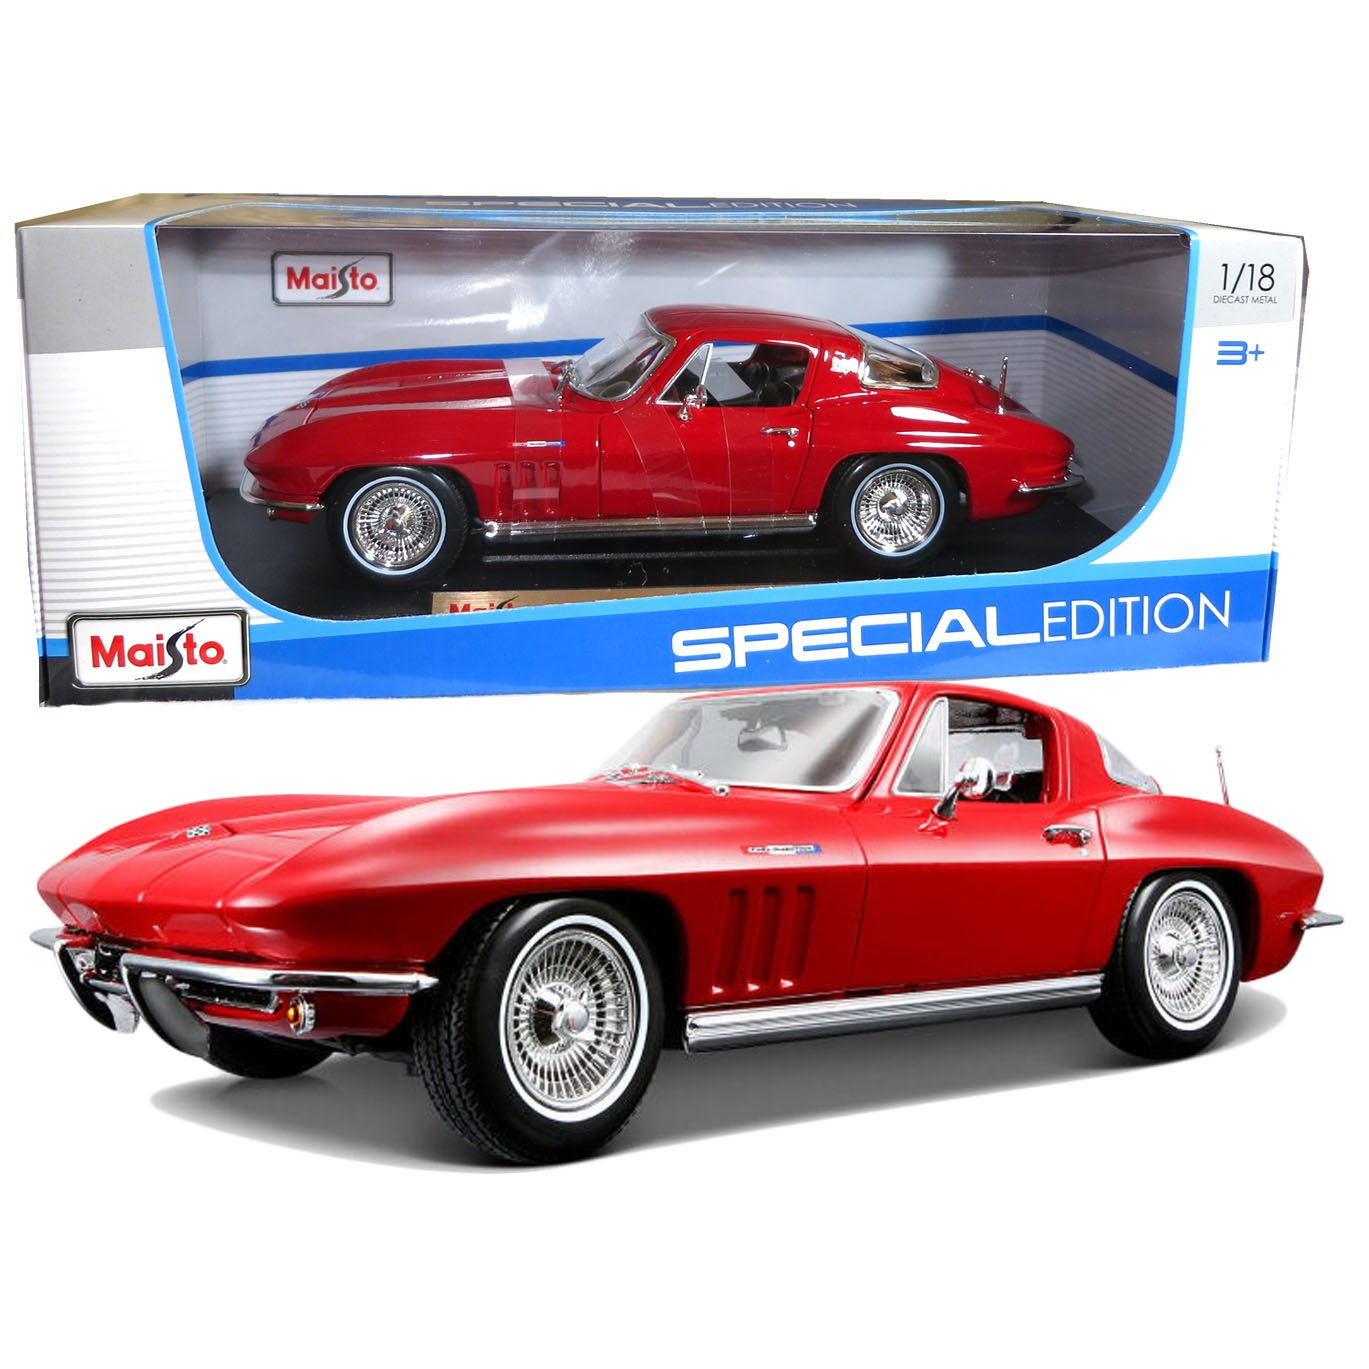 Maisto Year 2014 Special Edition Series 1 18 Scale Die Cast Car Set Red Color Classic Coupe 1965 CHEVROLET CORVETTE with Display Base Car Dimension 9 x 3 1 2 x 2 1 2